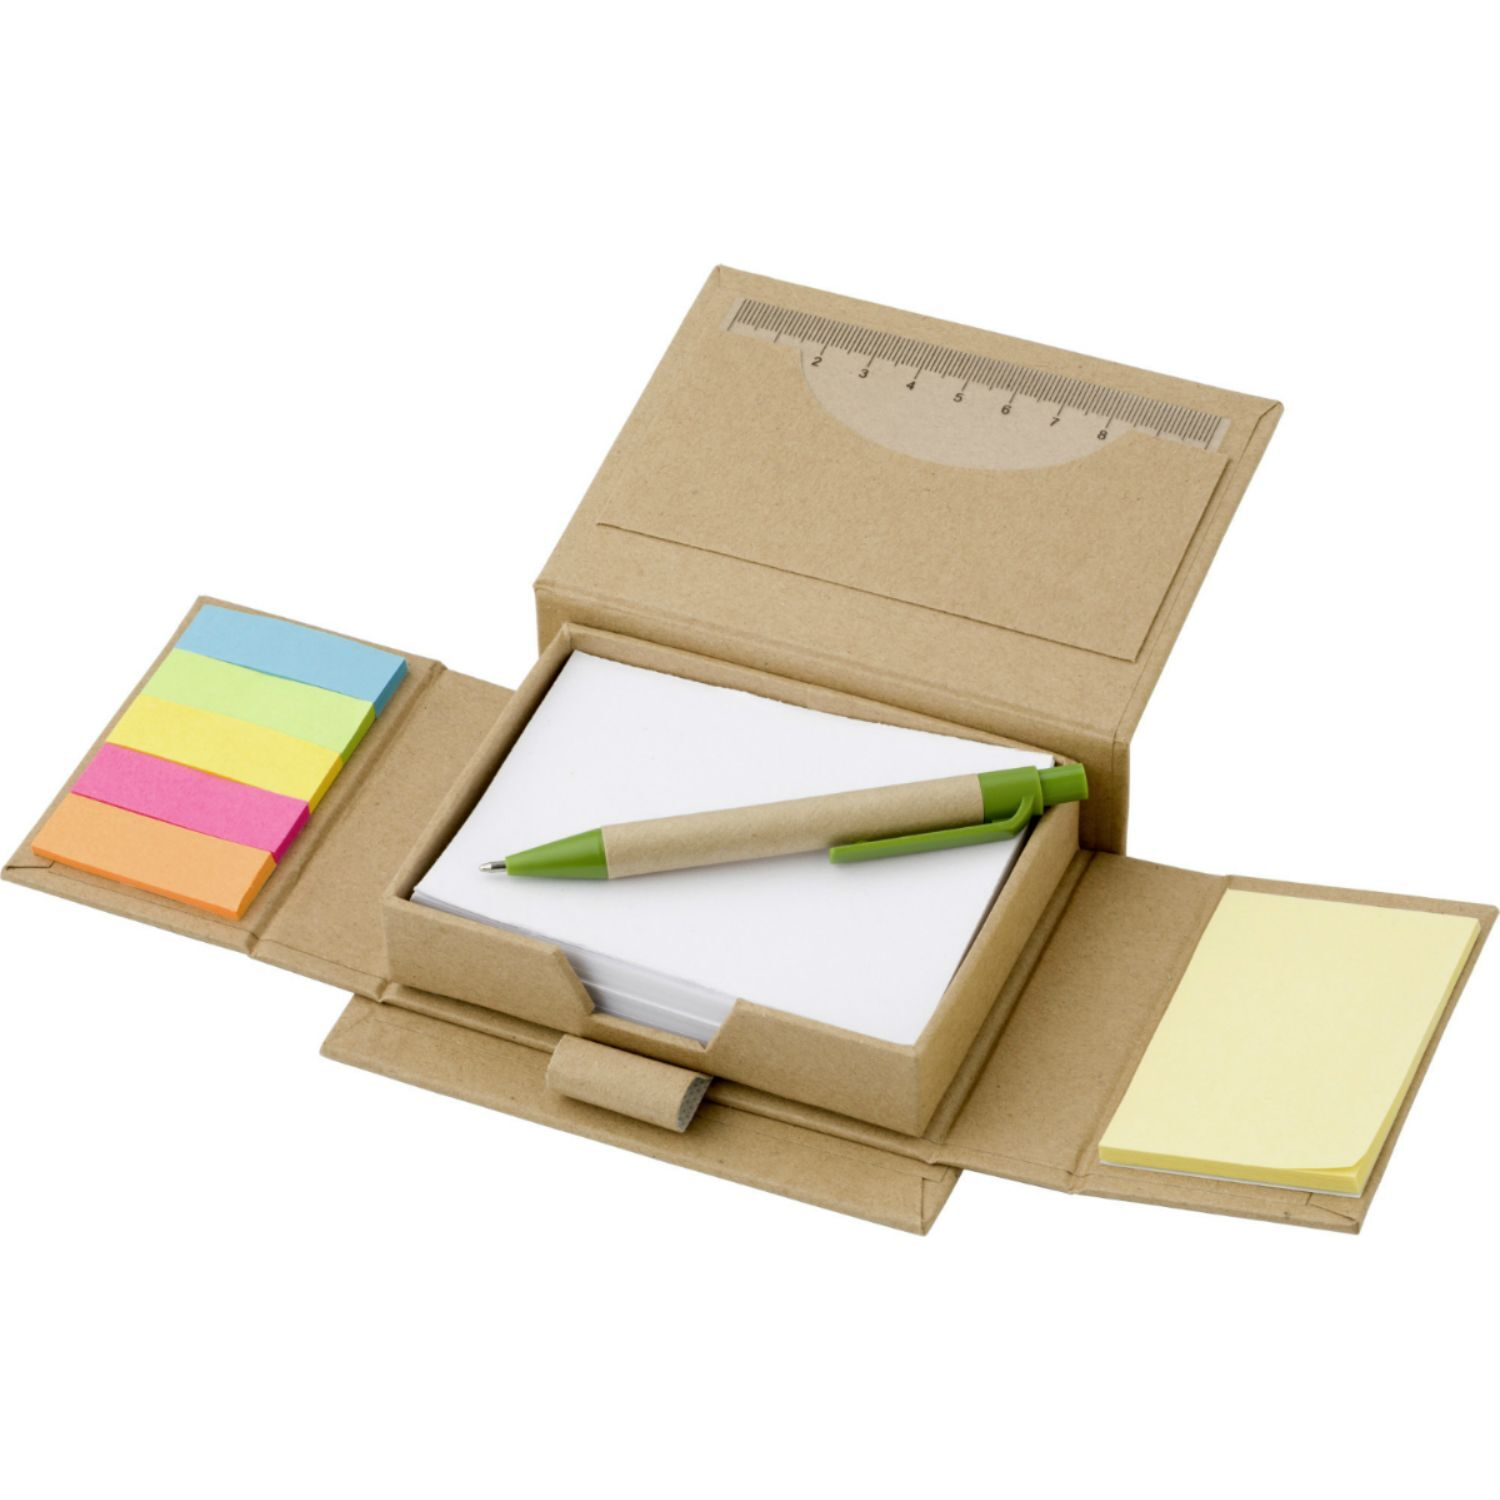 Desk Organiser with Notepad & Pen